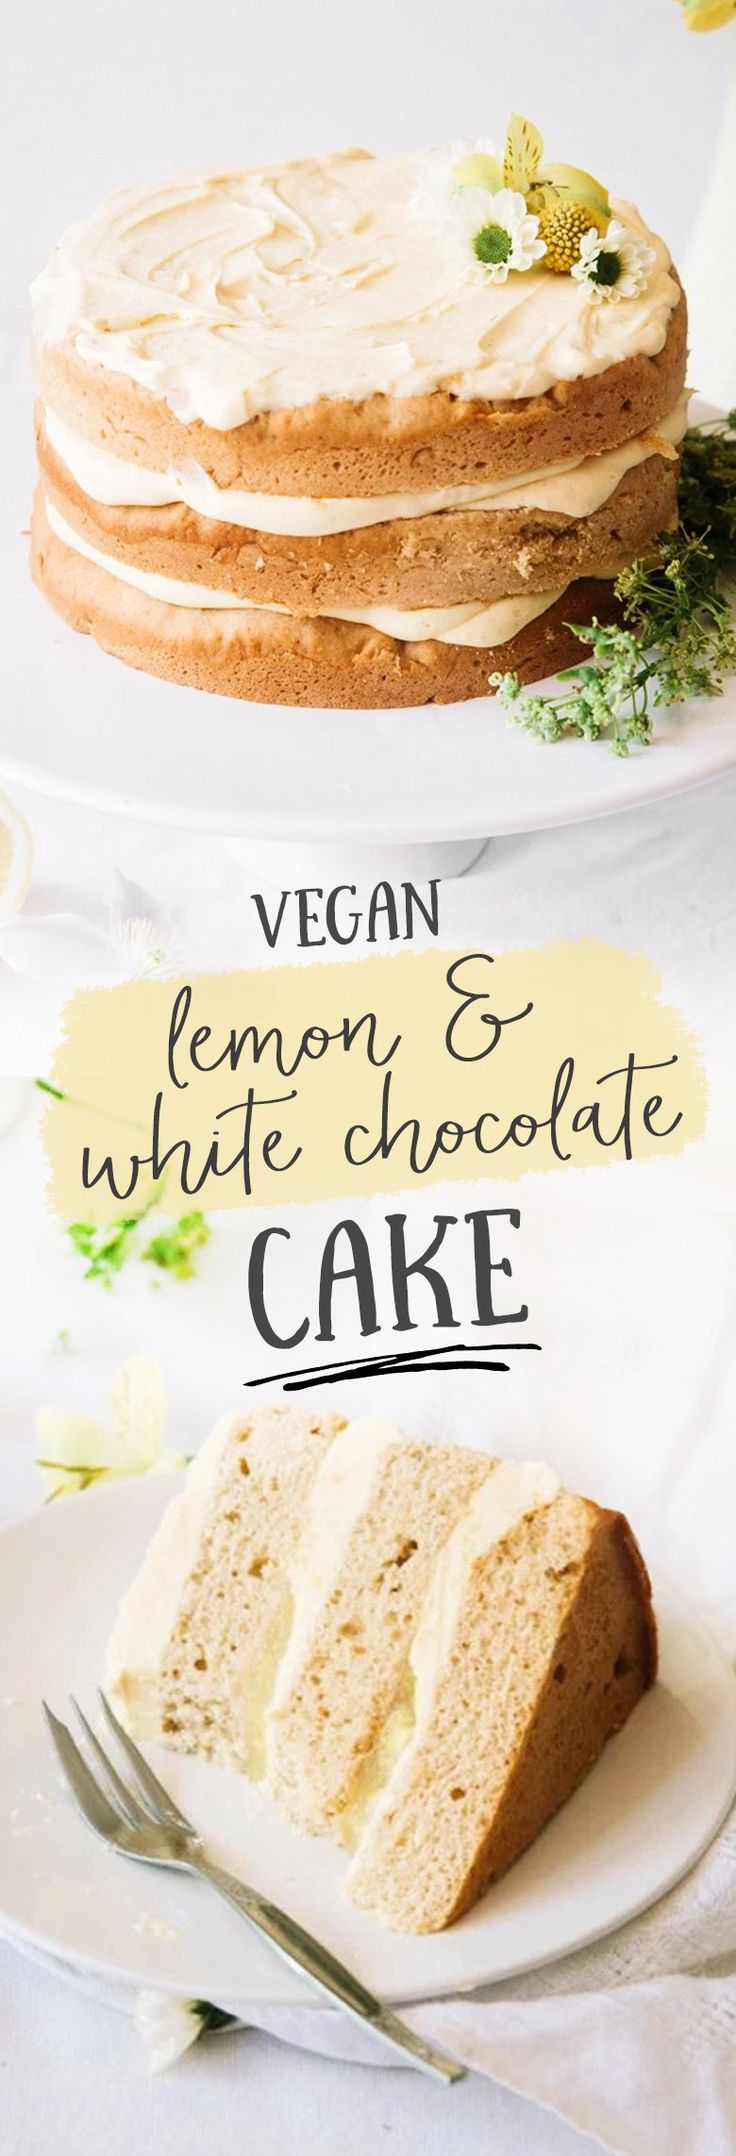 Vegan Elderflower Cake with Lemon Curd & White Chocolate Frosting